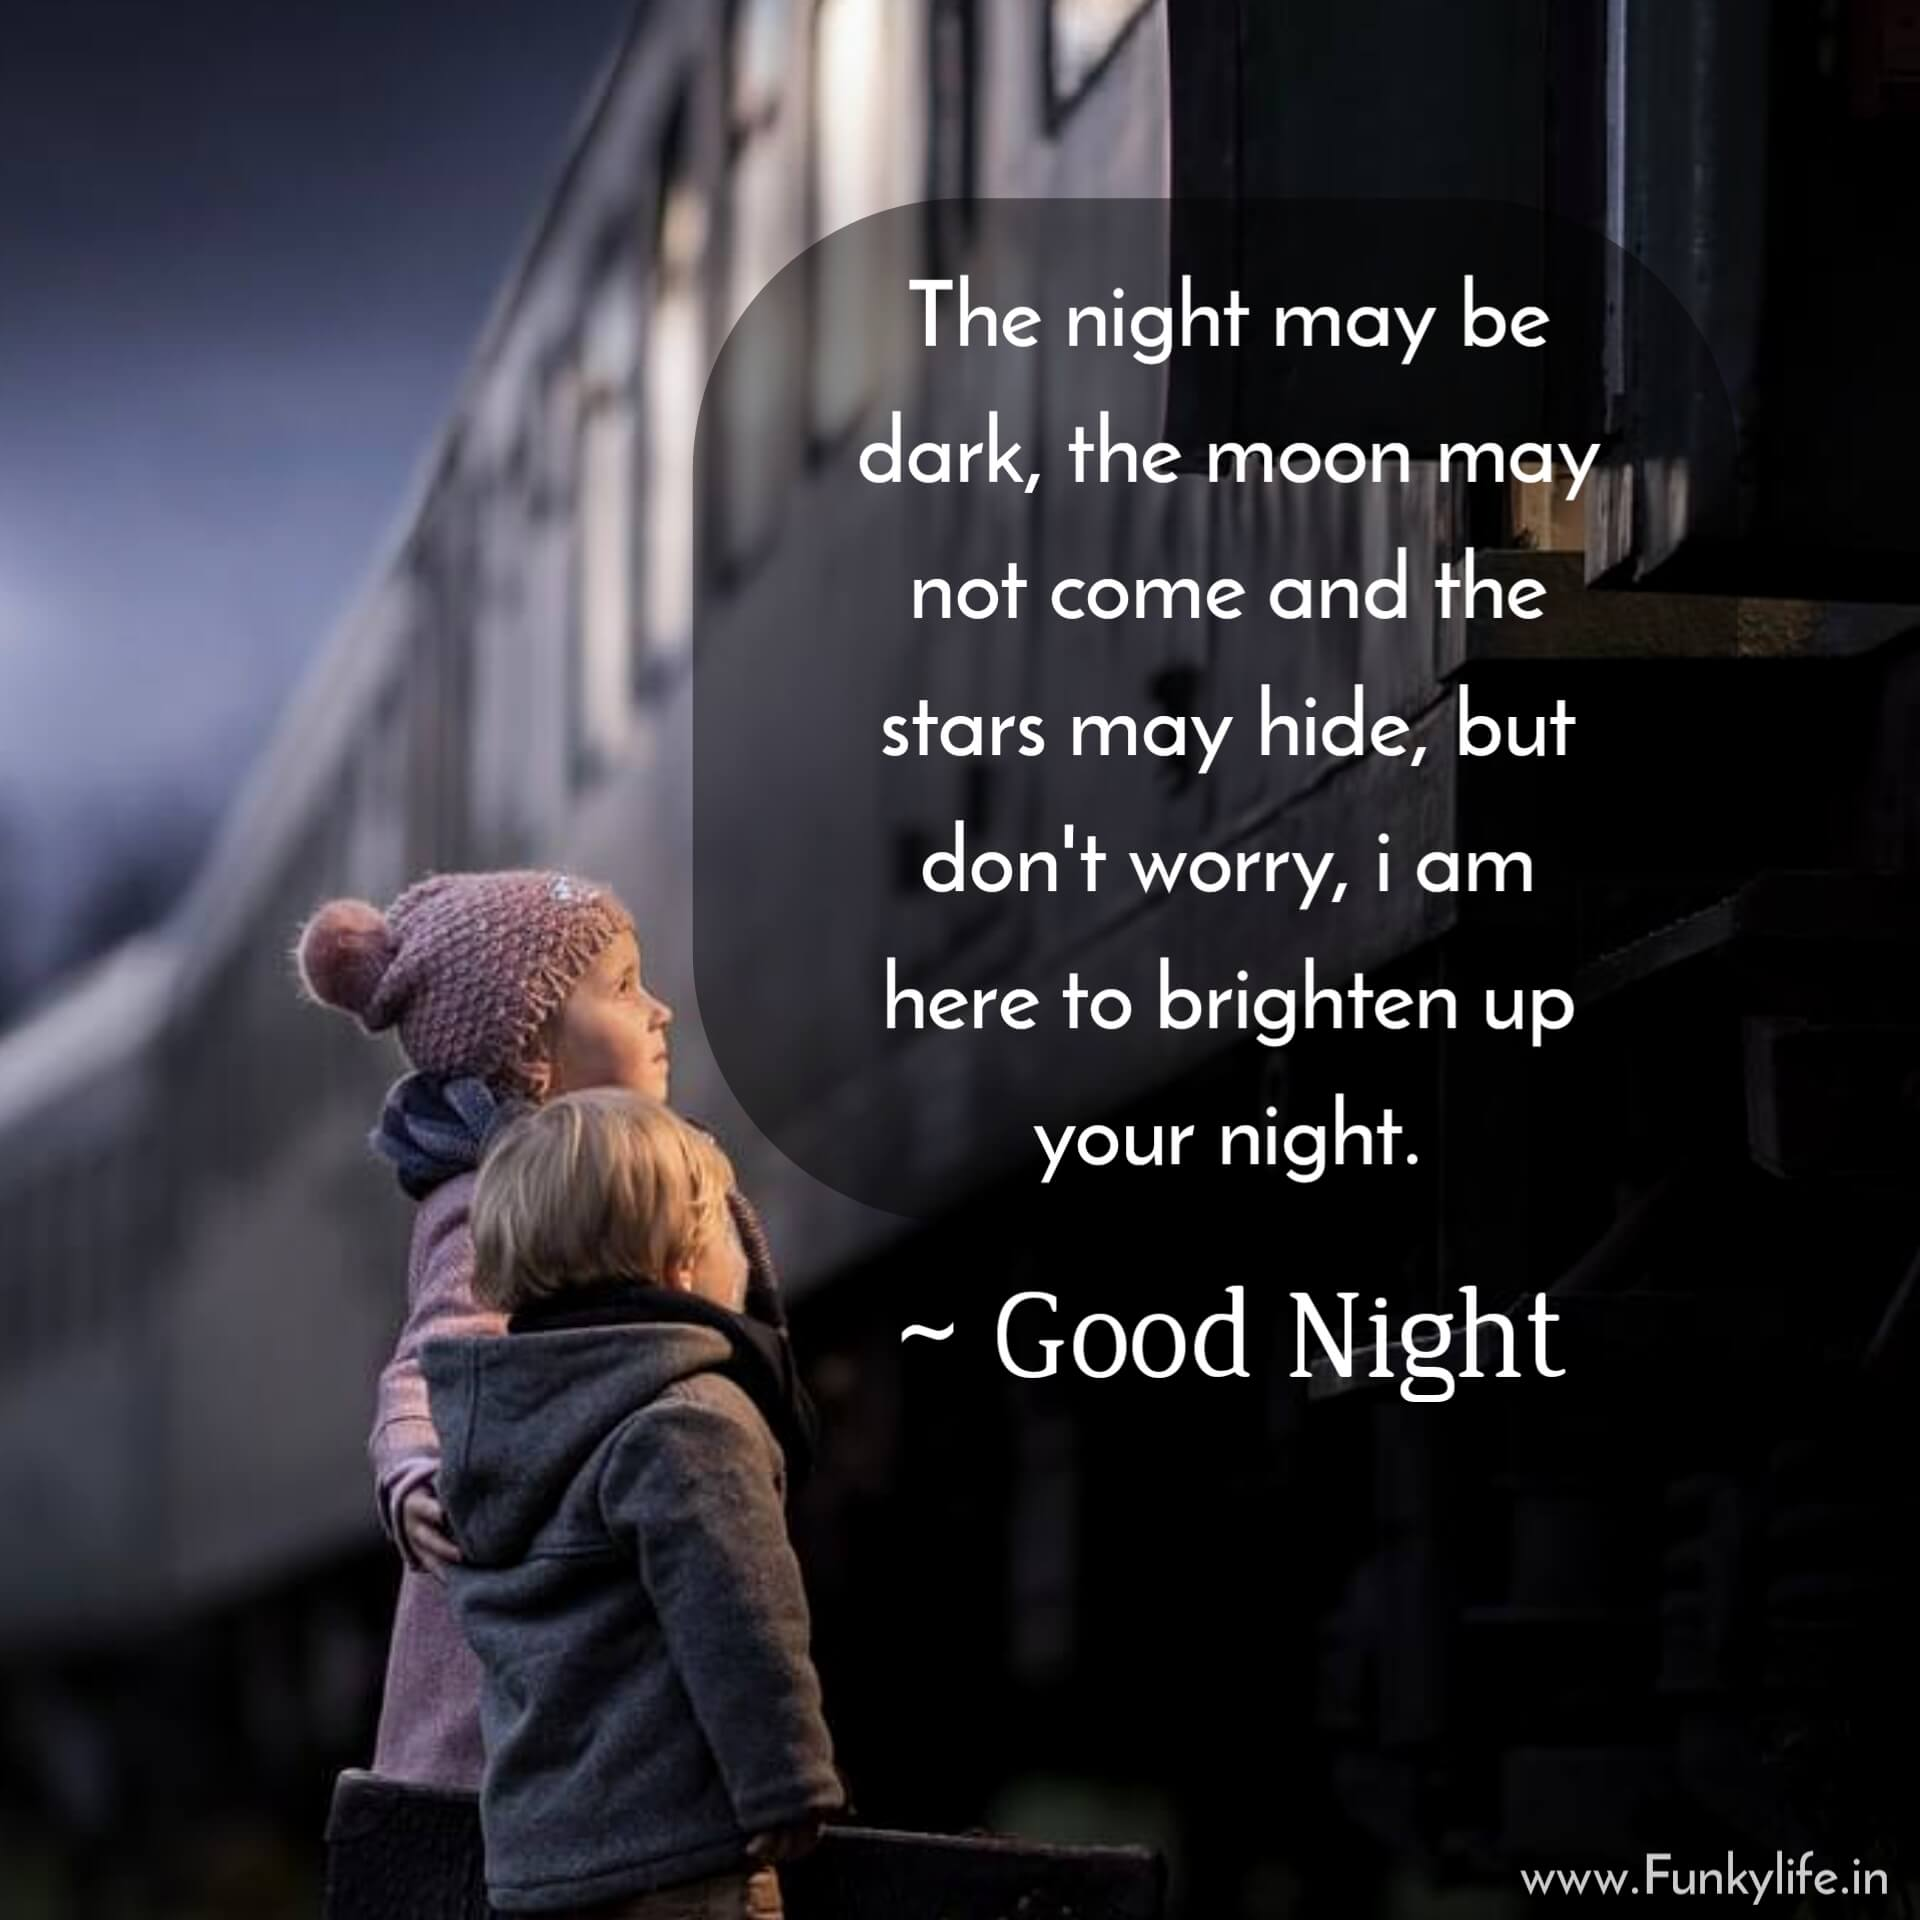 Good Night Quotes with Images